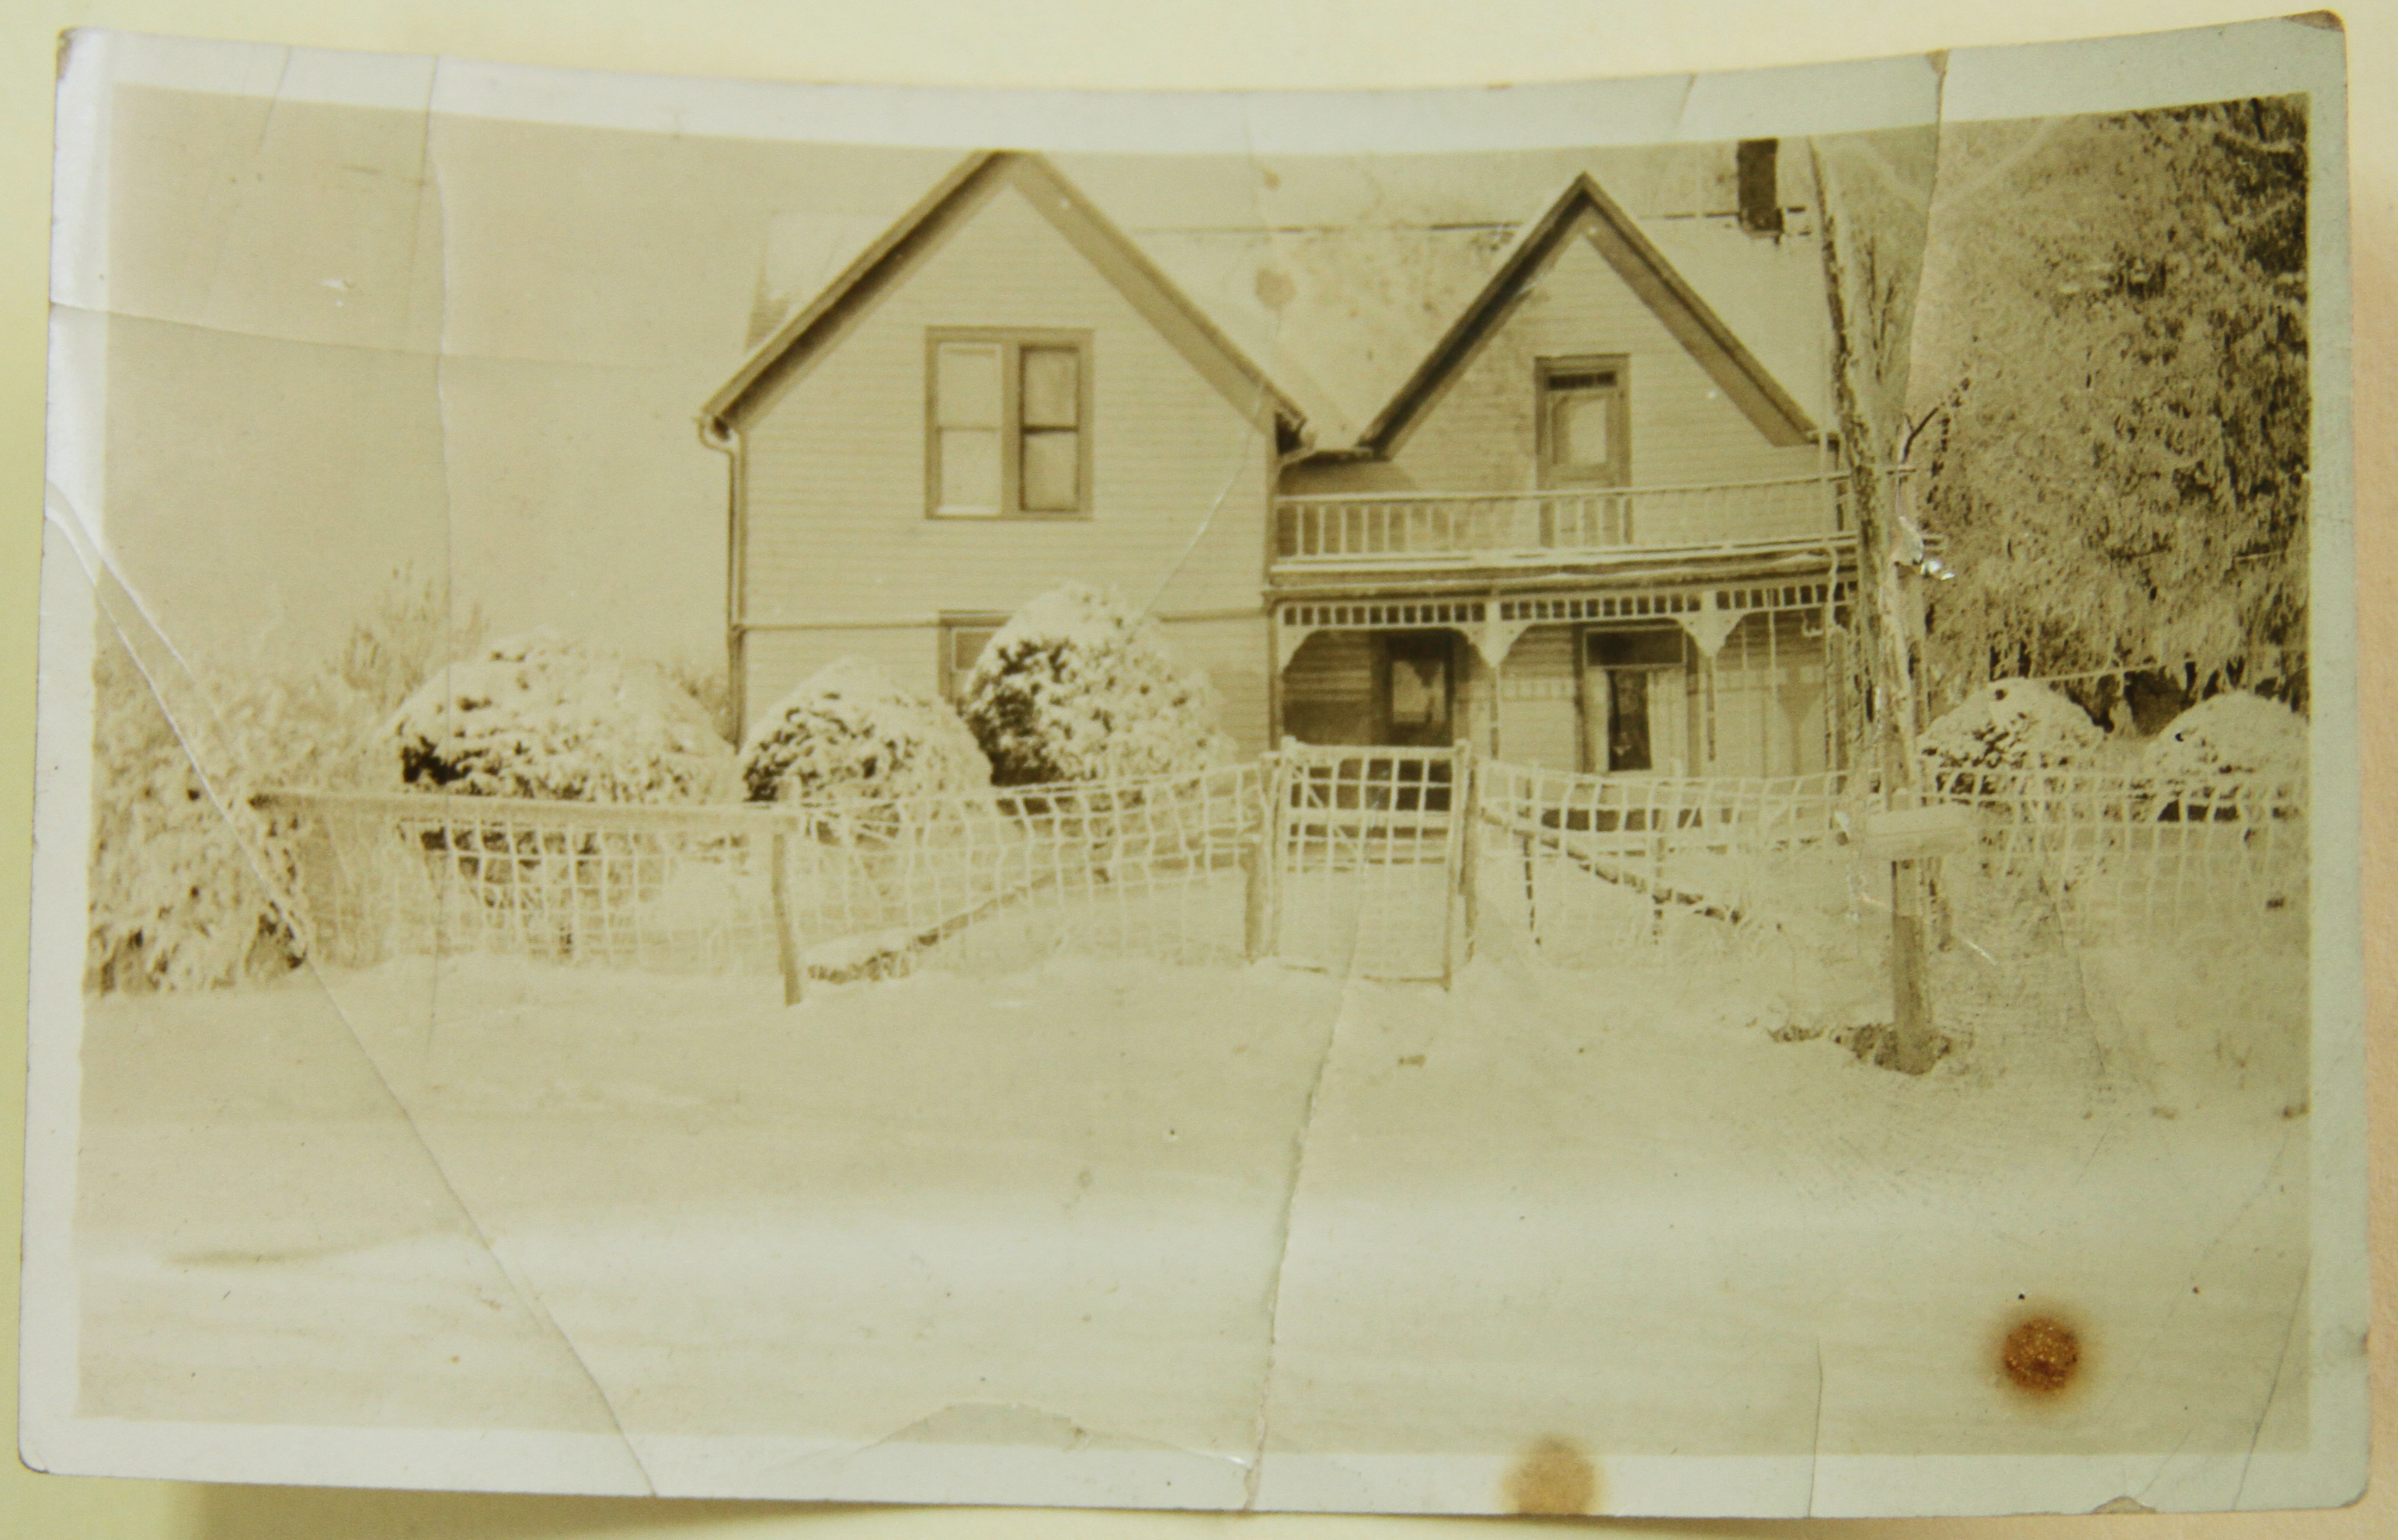 Earl L. Stahl's Childhood Home, Earl L Stahl Collection, Courtesy of Craig Bowers.